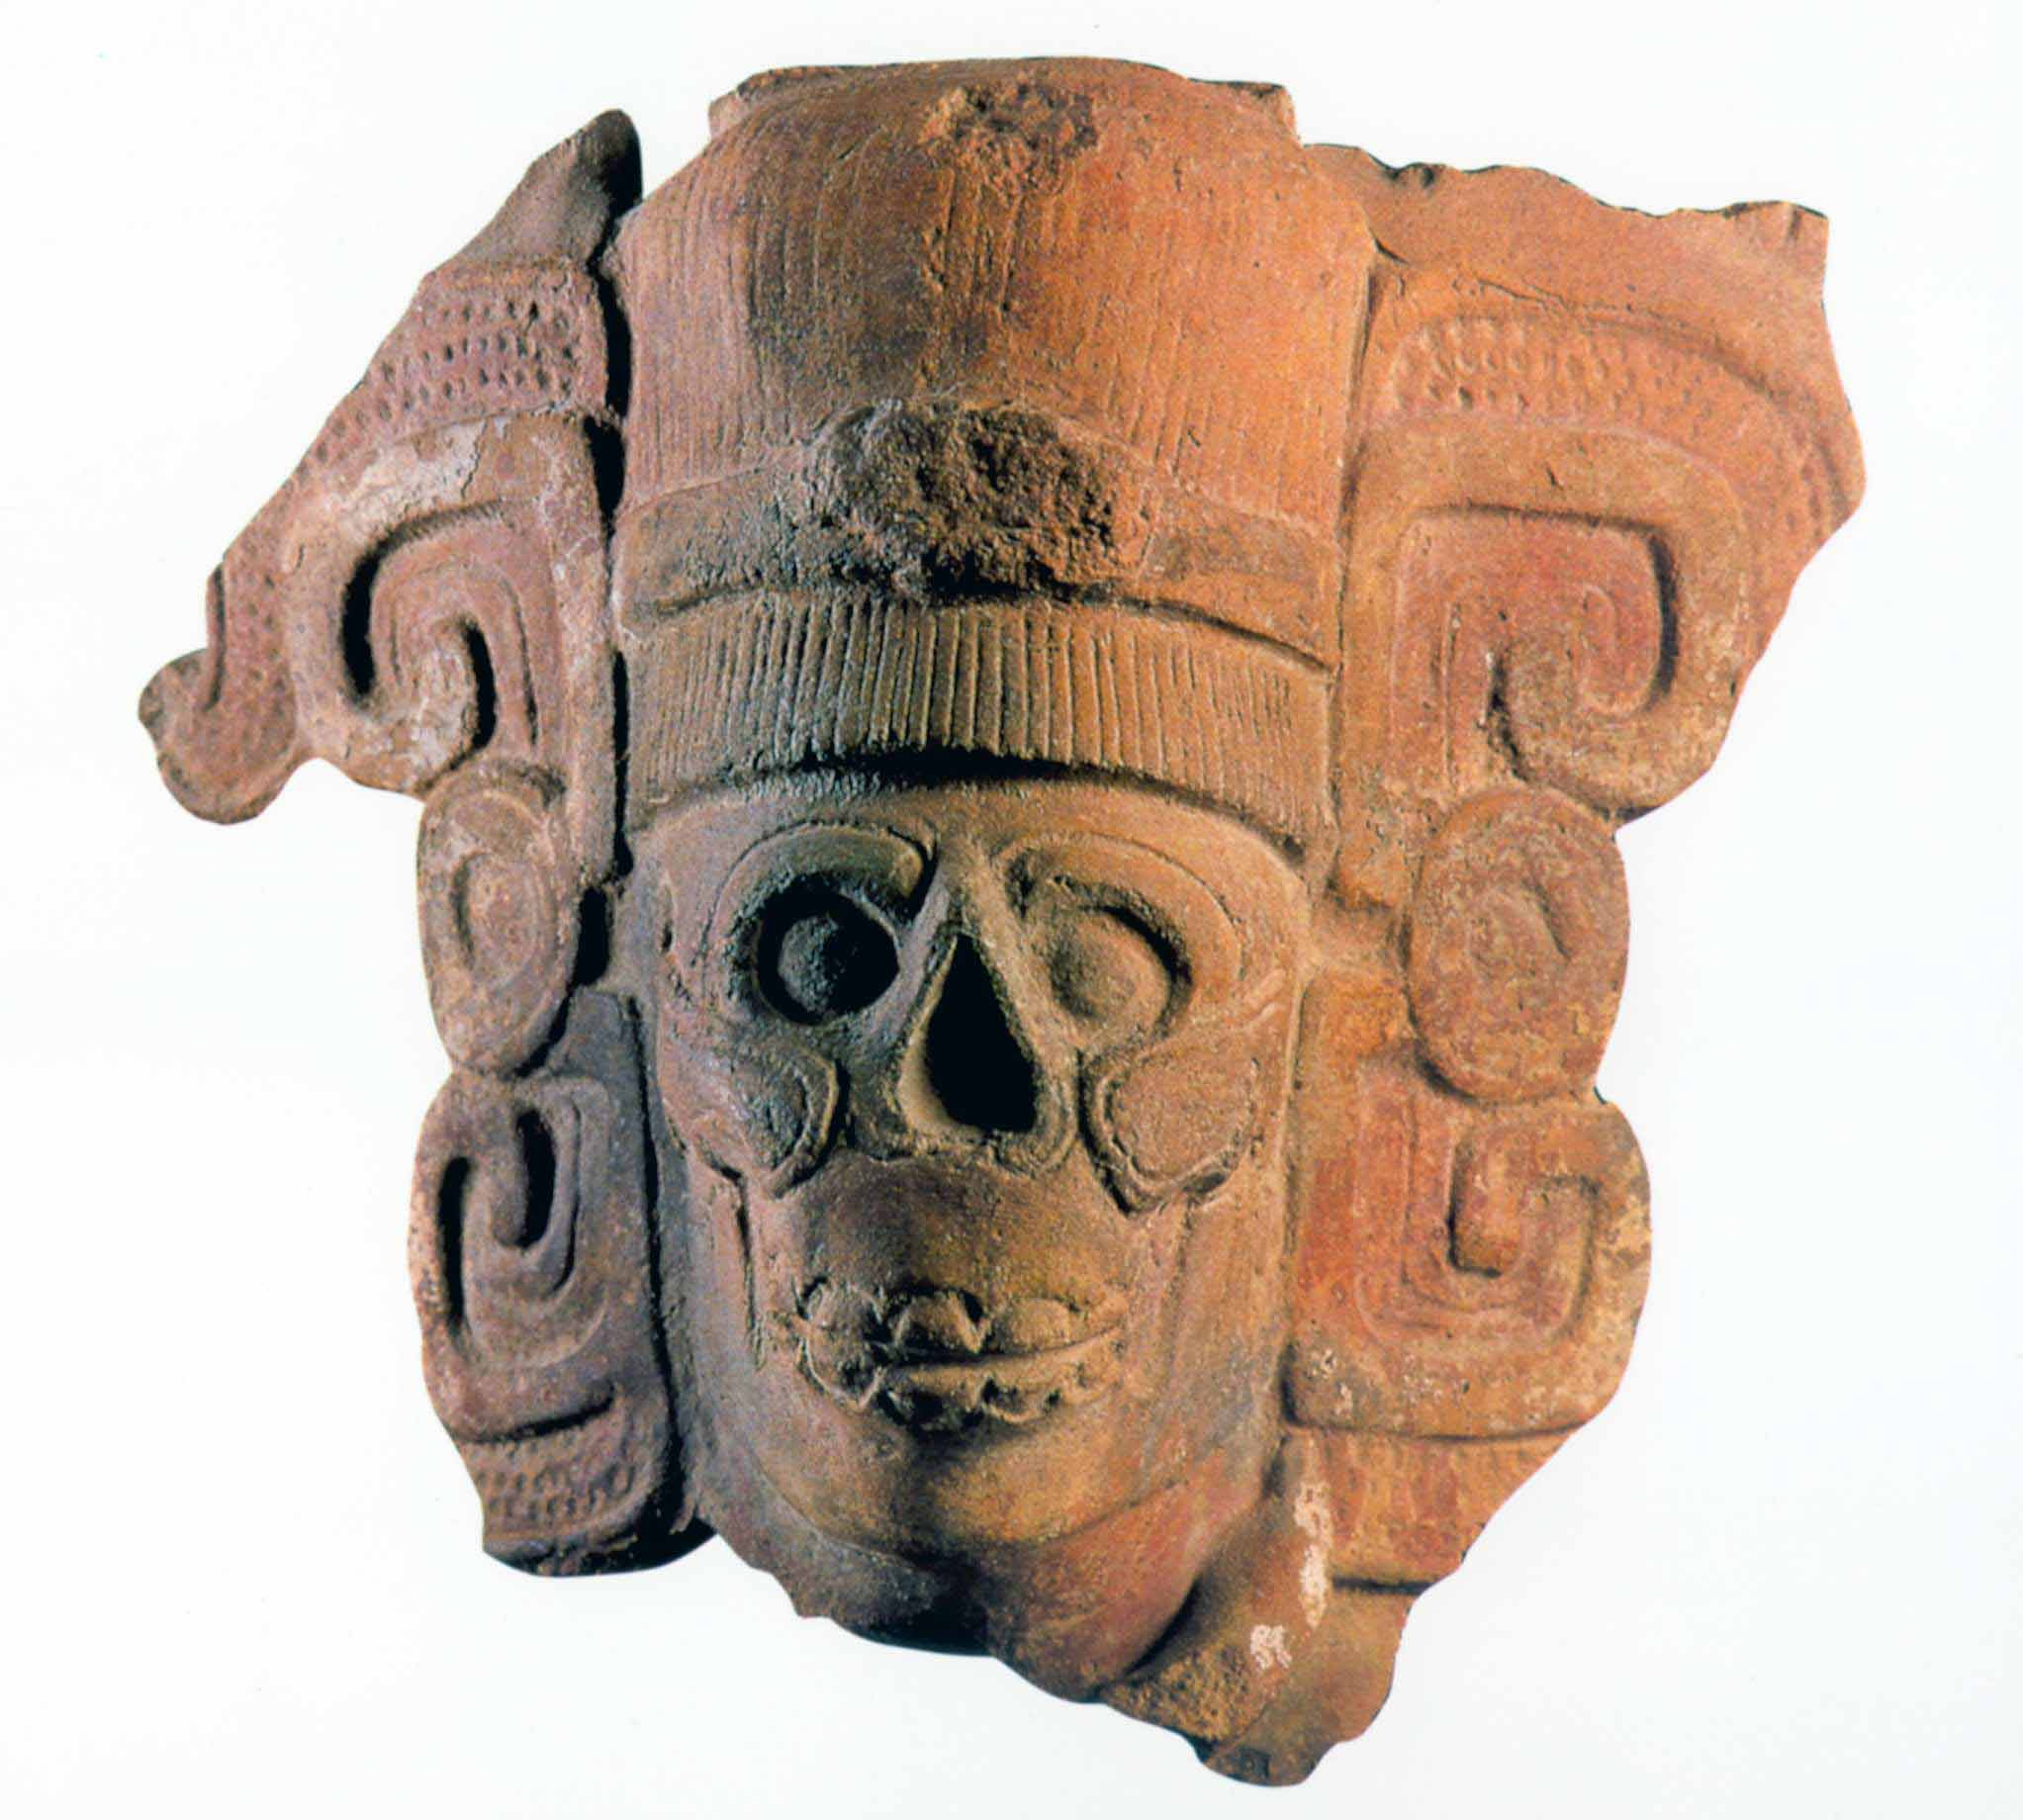 Hollow ceramic head depicts the Lord of the Underworld